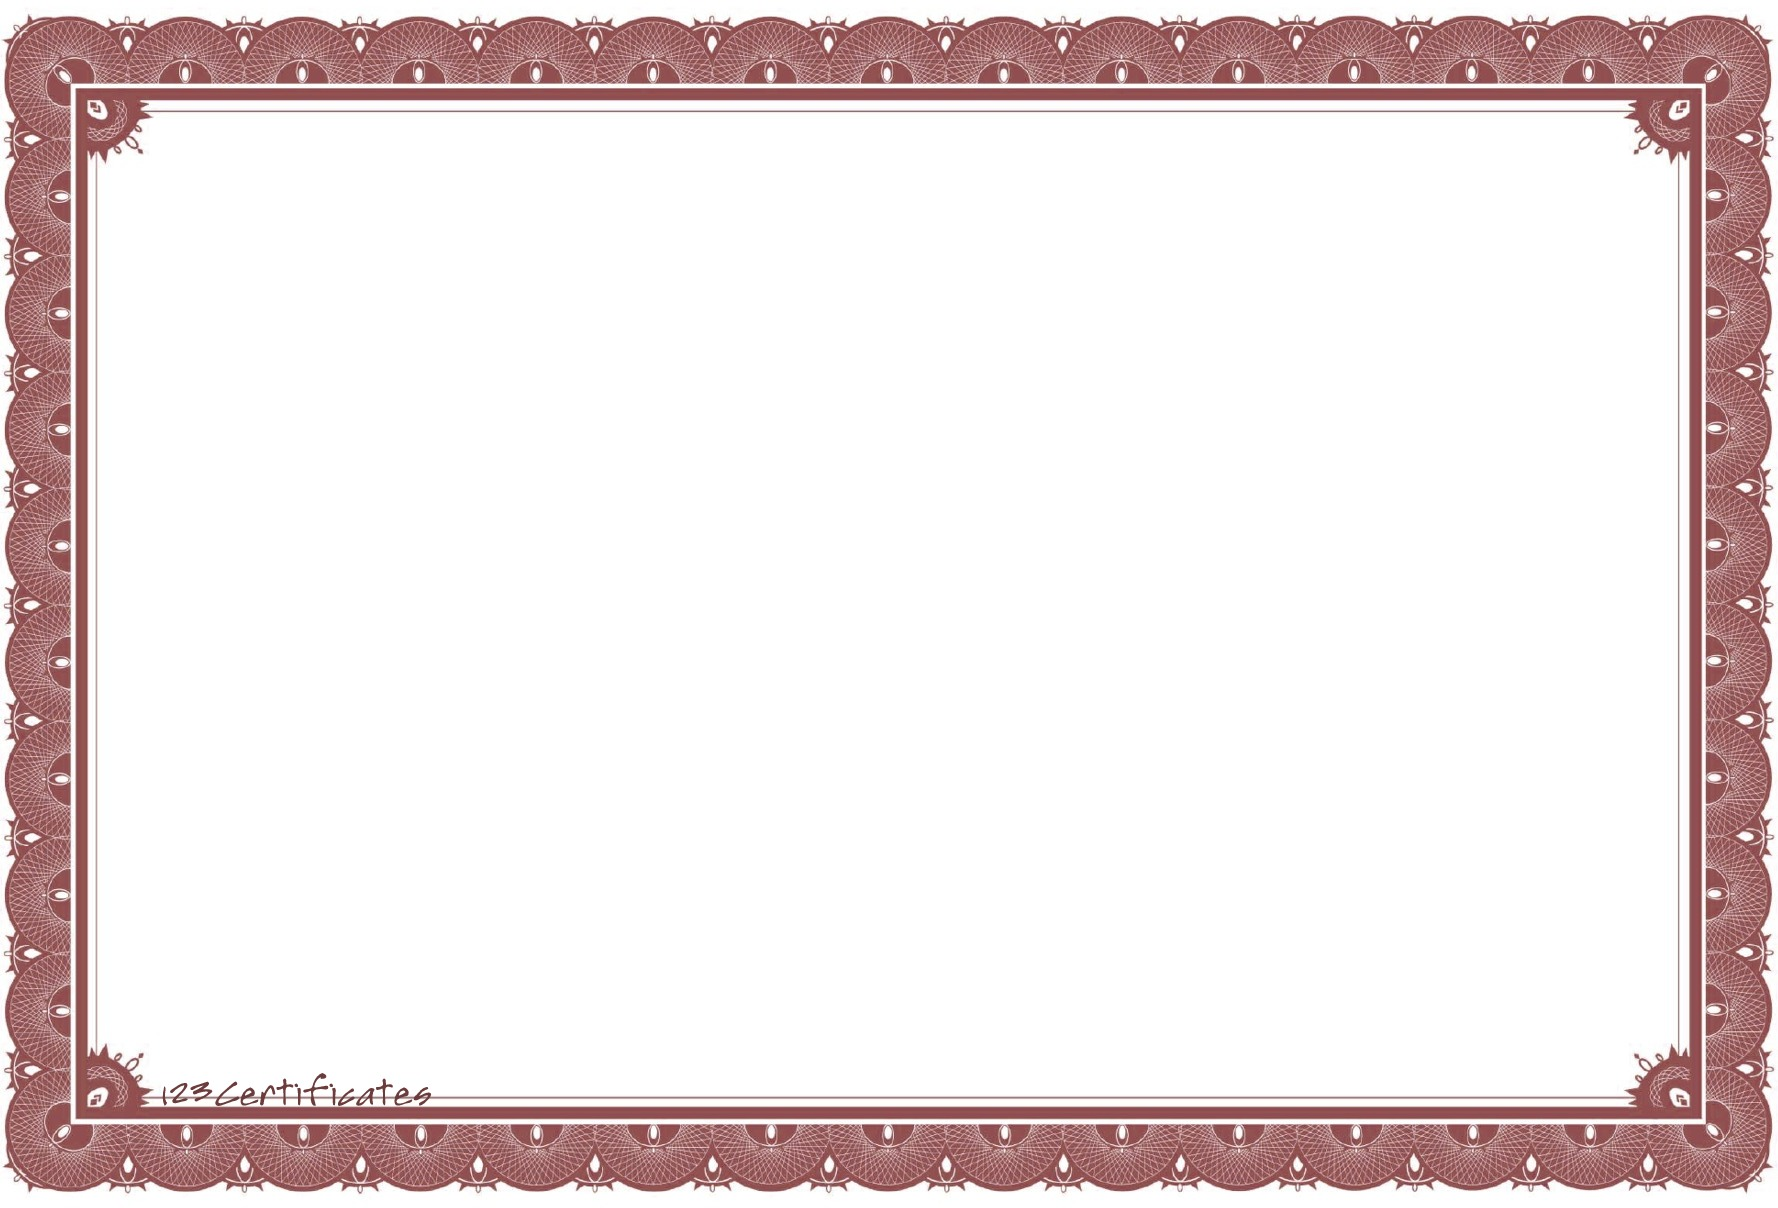 Free Certificate Borders To Download